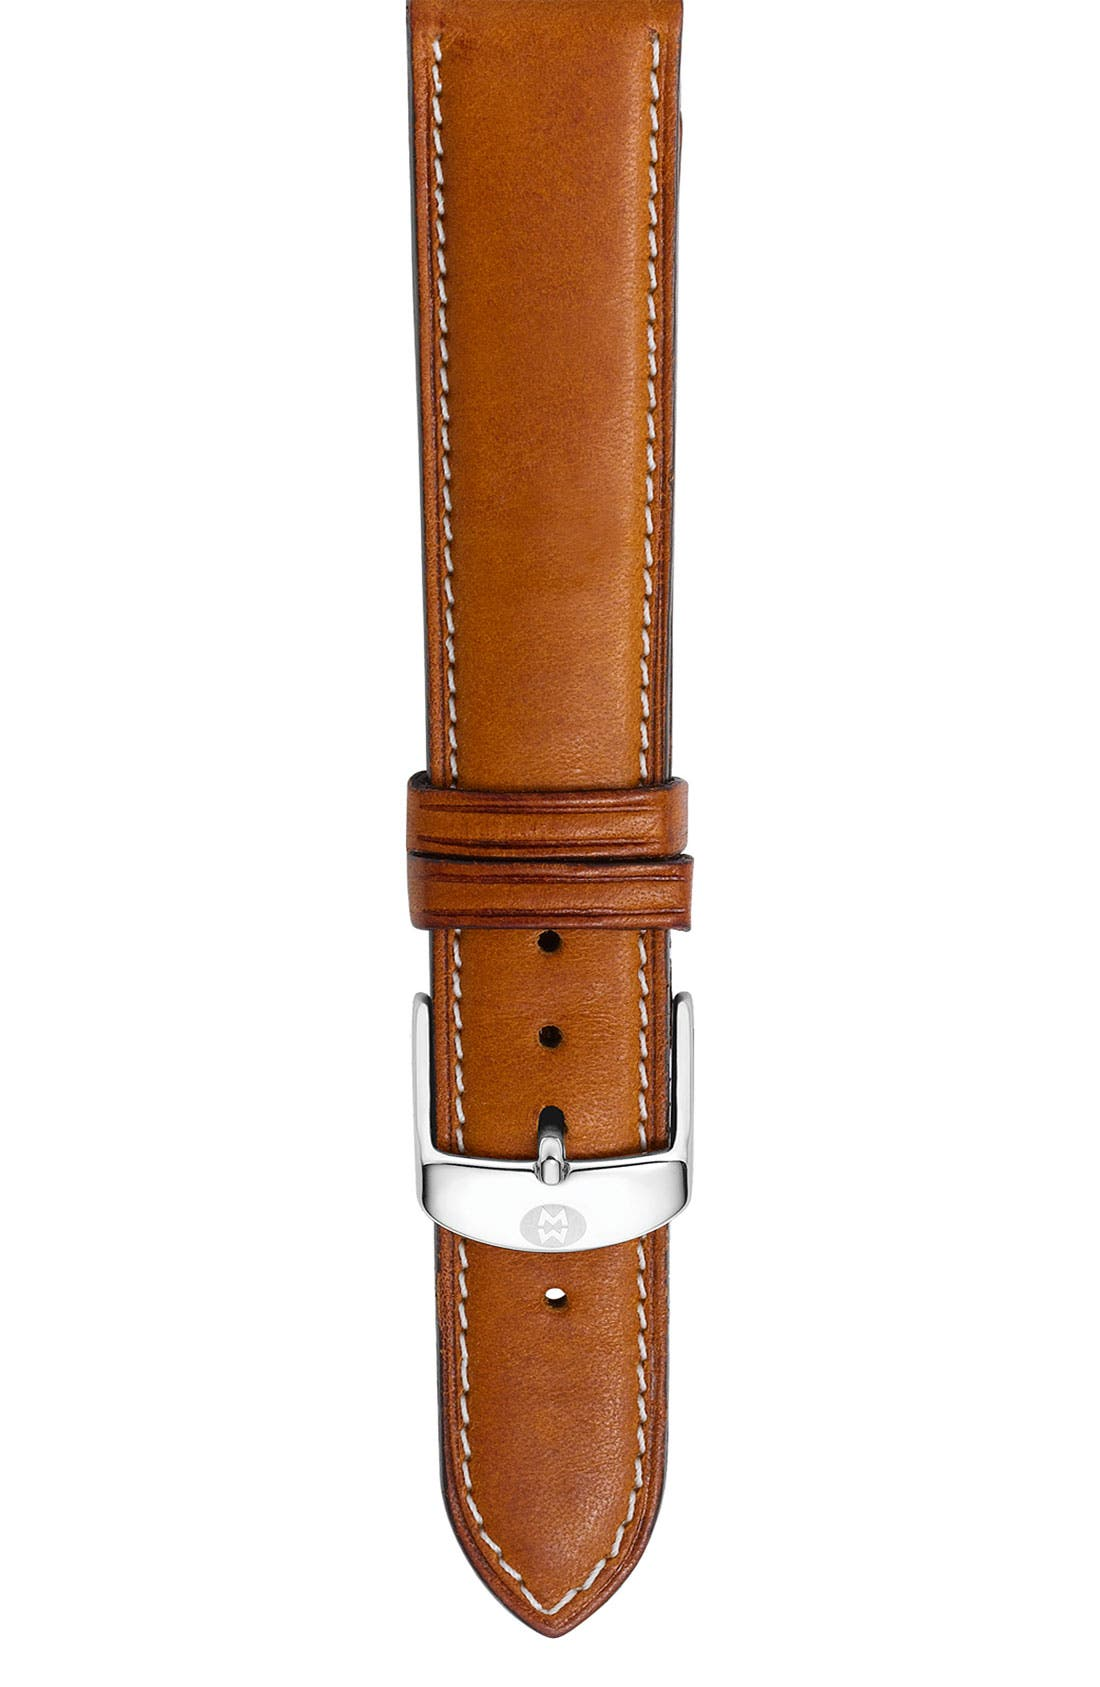 Main Image - MICHELE 16mm Calfskin Leather Watch Strap